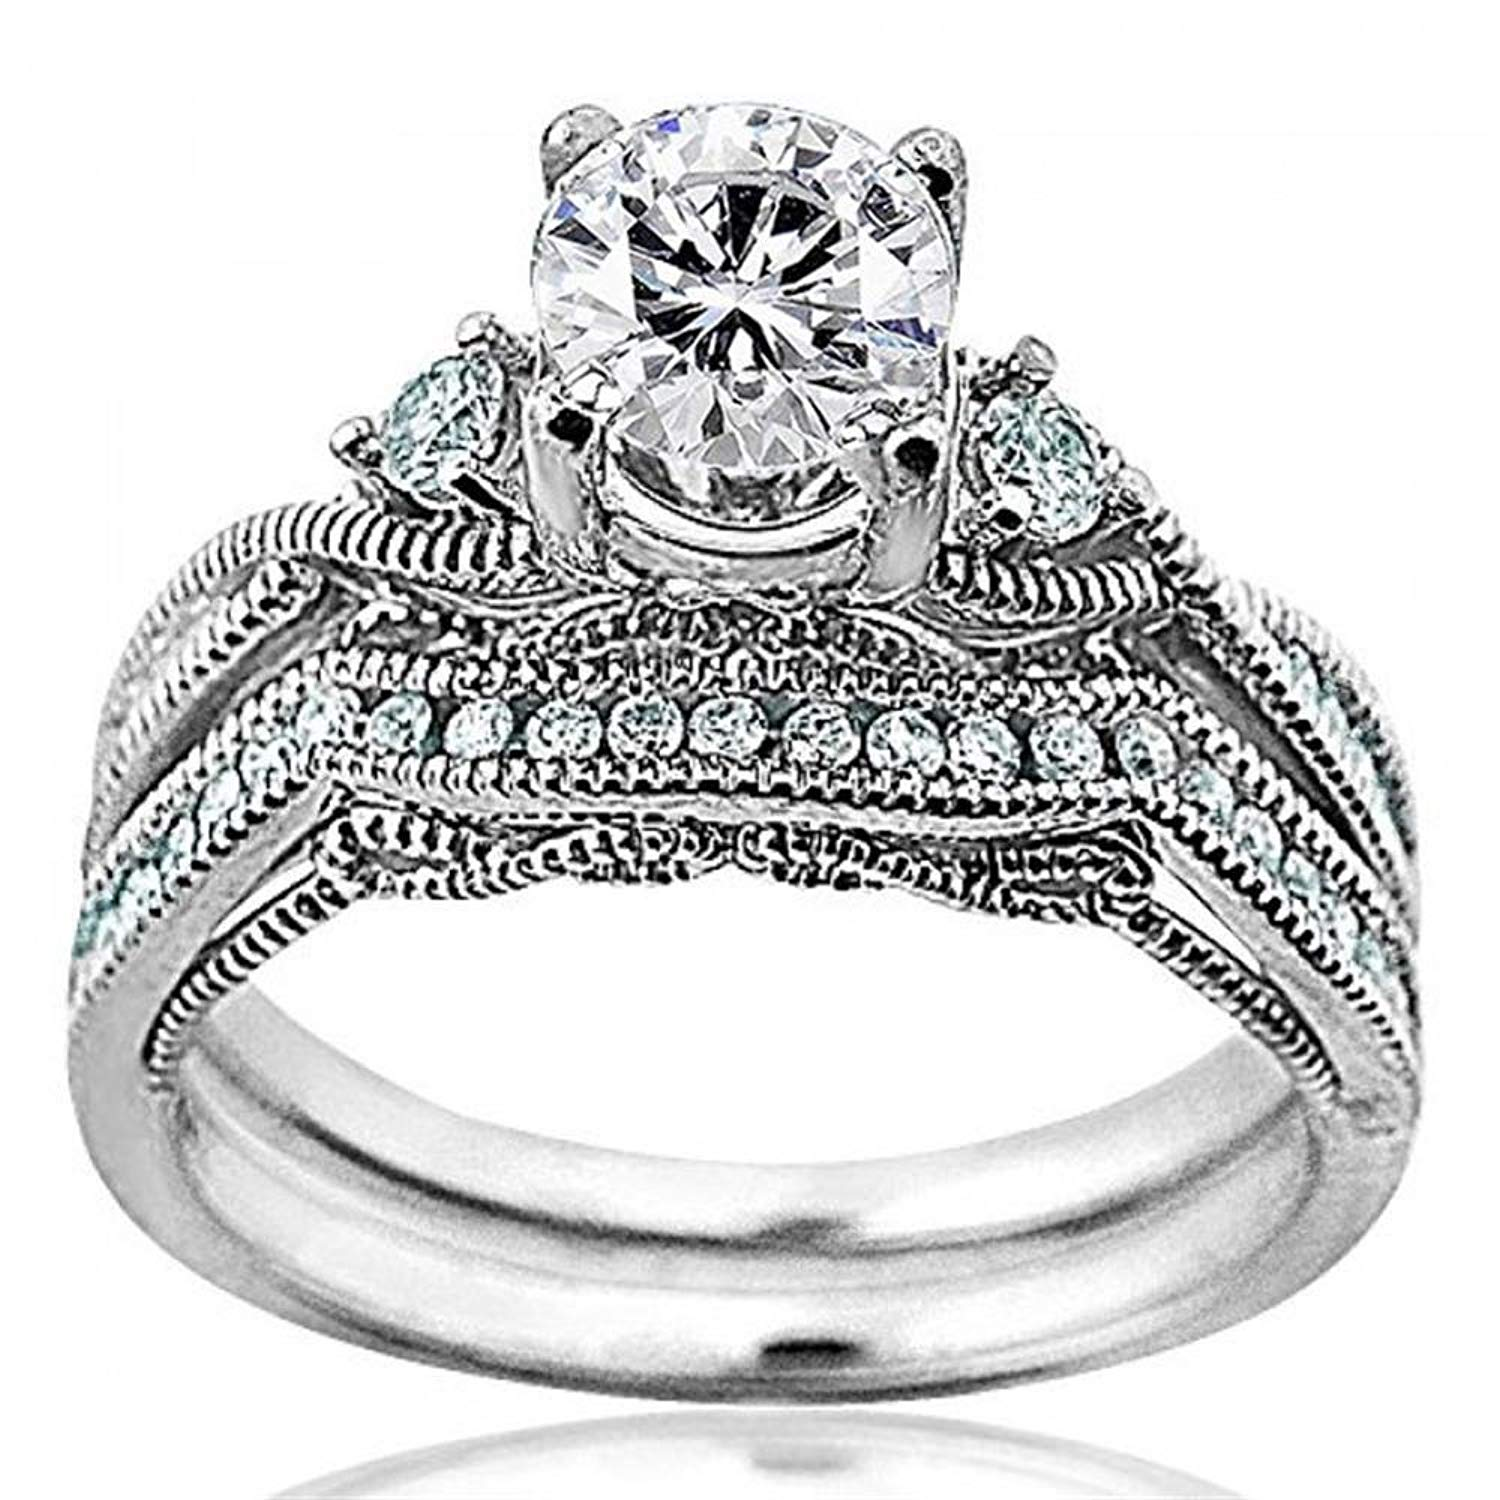 Midwest Jewellery Forever Brilliant Round Moissanite and Diamond 14K White Gold Bridal Wedding Set 1.28ctw Ornate Style